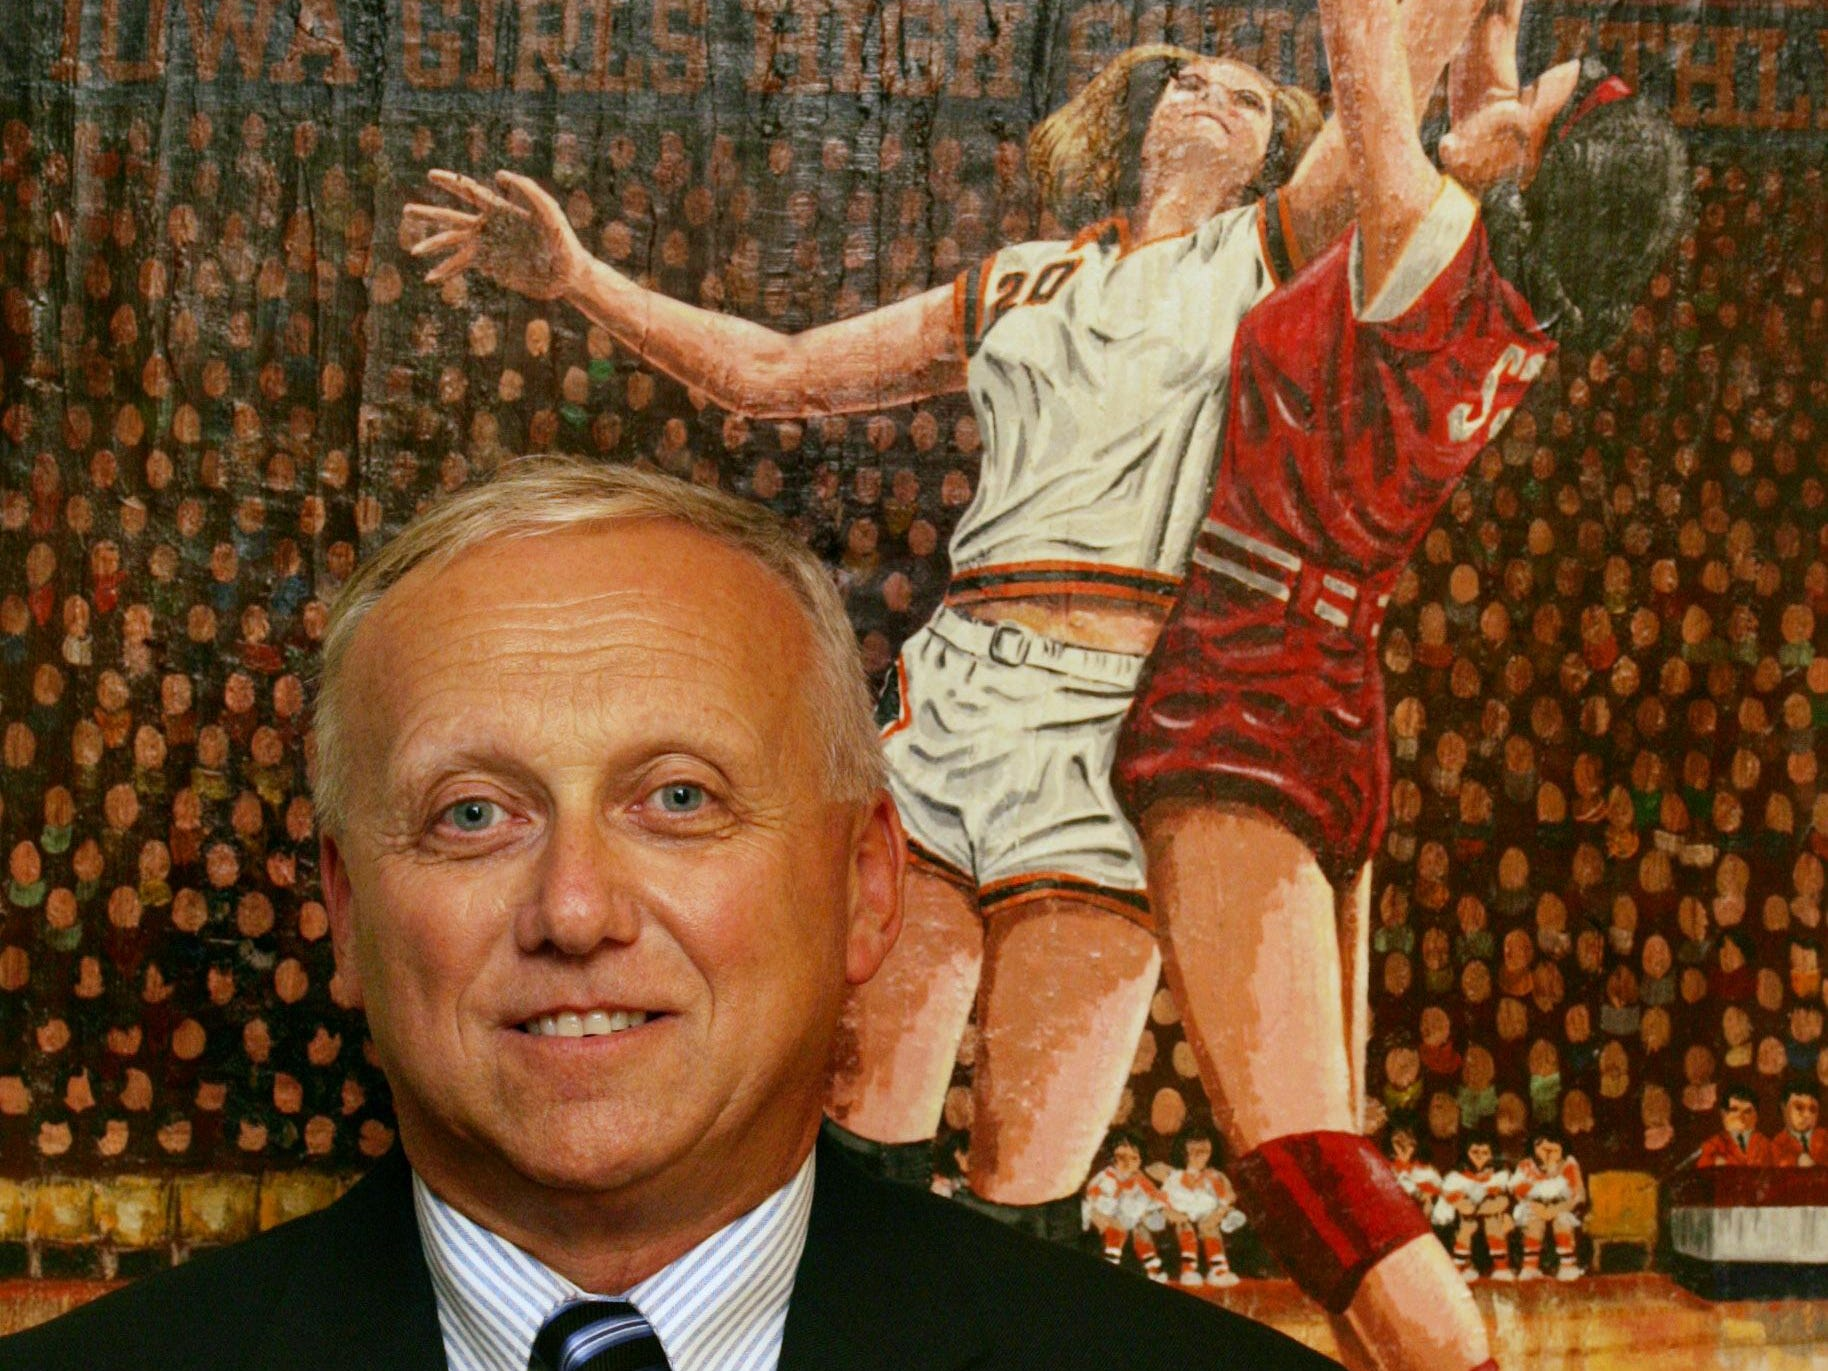 Mike Dick has announced his retirement as the executive director of the Iowa Girls High School Athletic Union, effective next year.